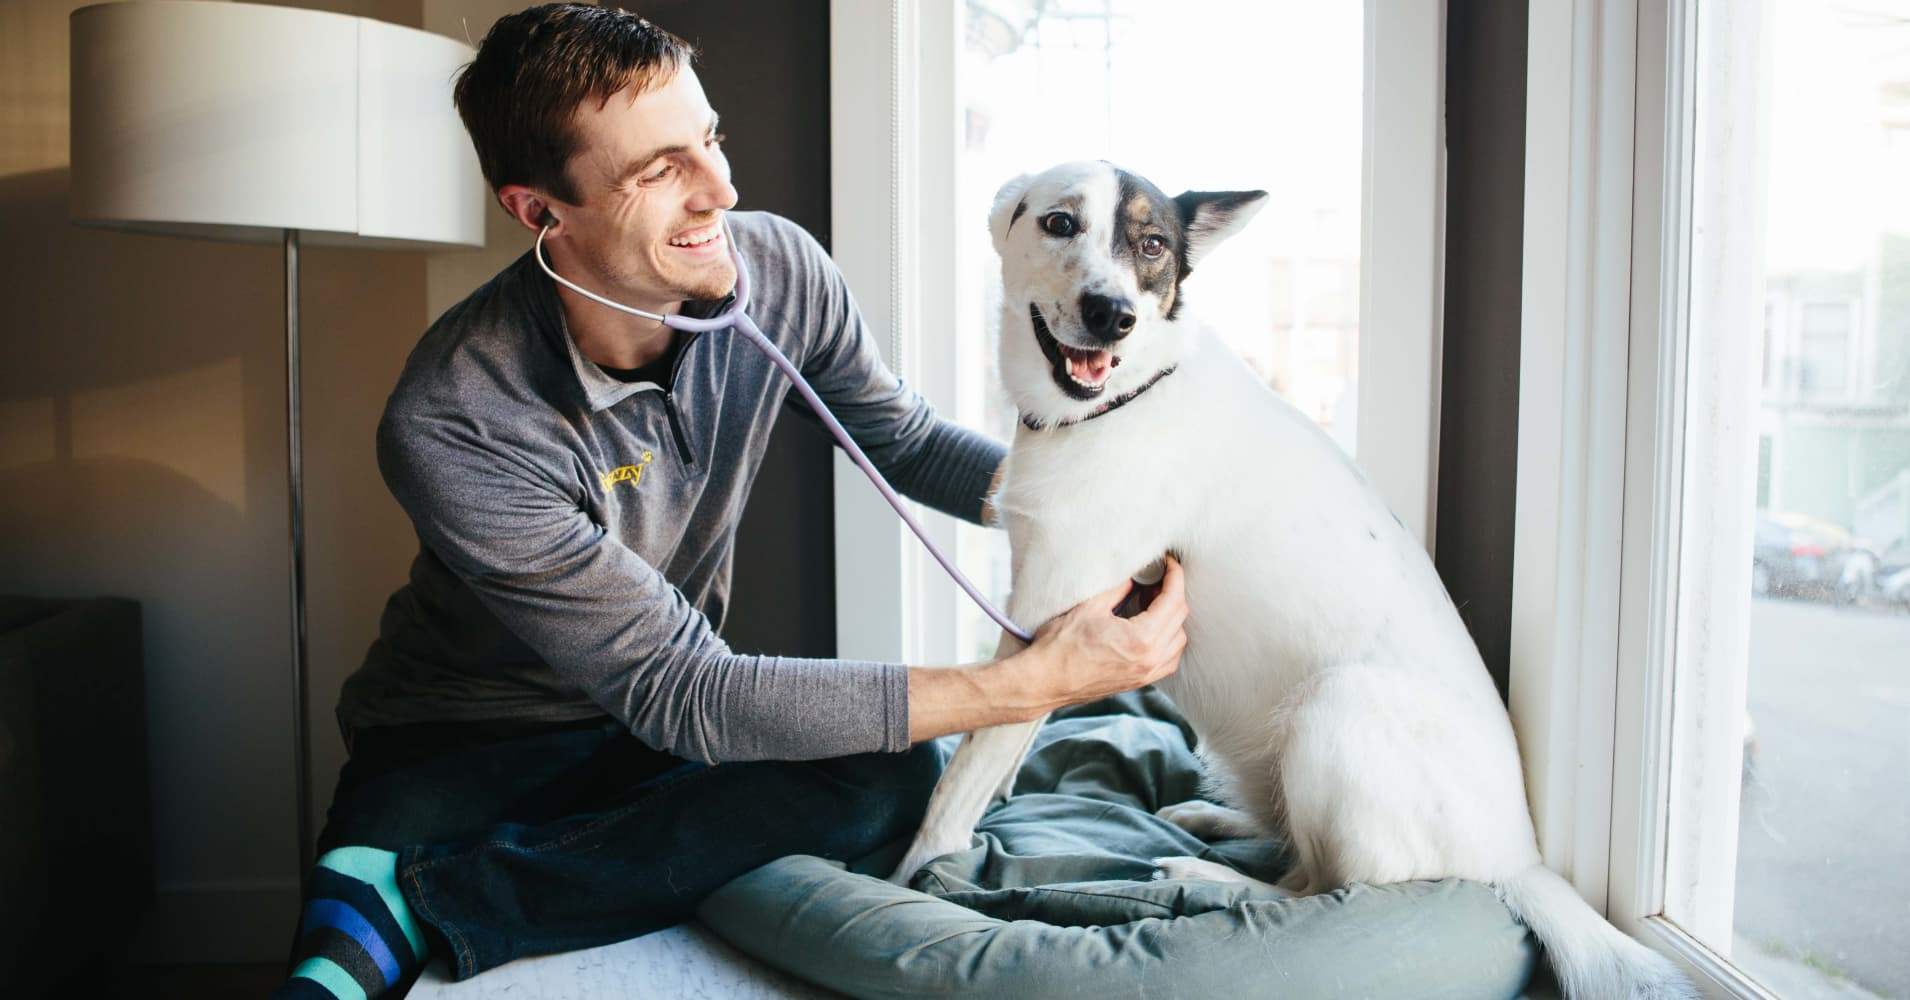 Start-up Fuzzy offers house calls for your pets for $468 a year